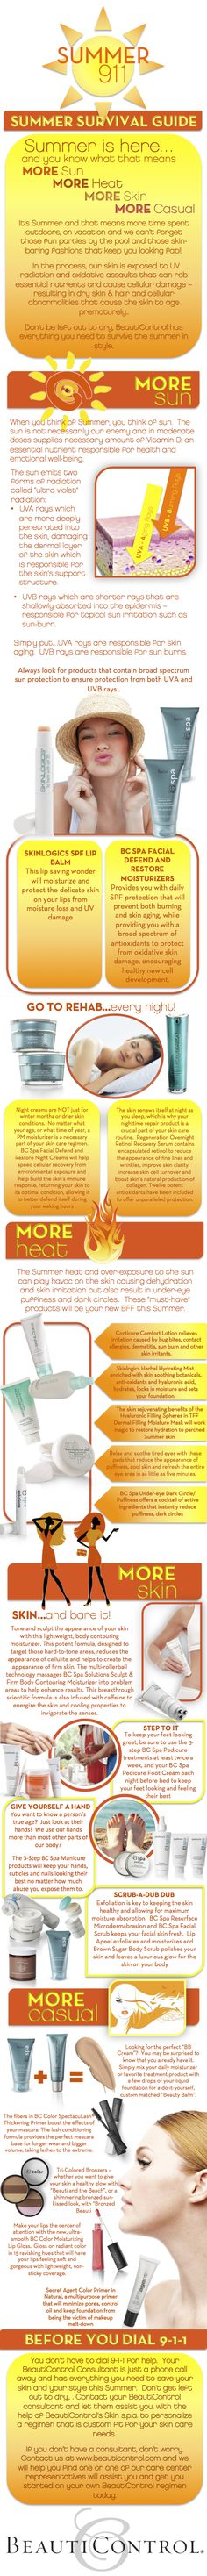 BeautiControl has your guide to surviving the Summer sun and heat.    www.beautipage.com/jeanene